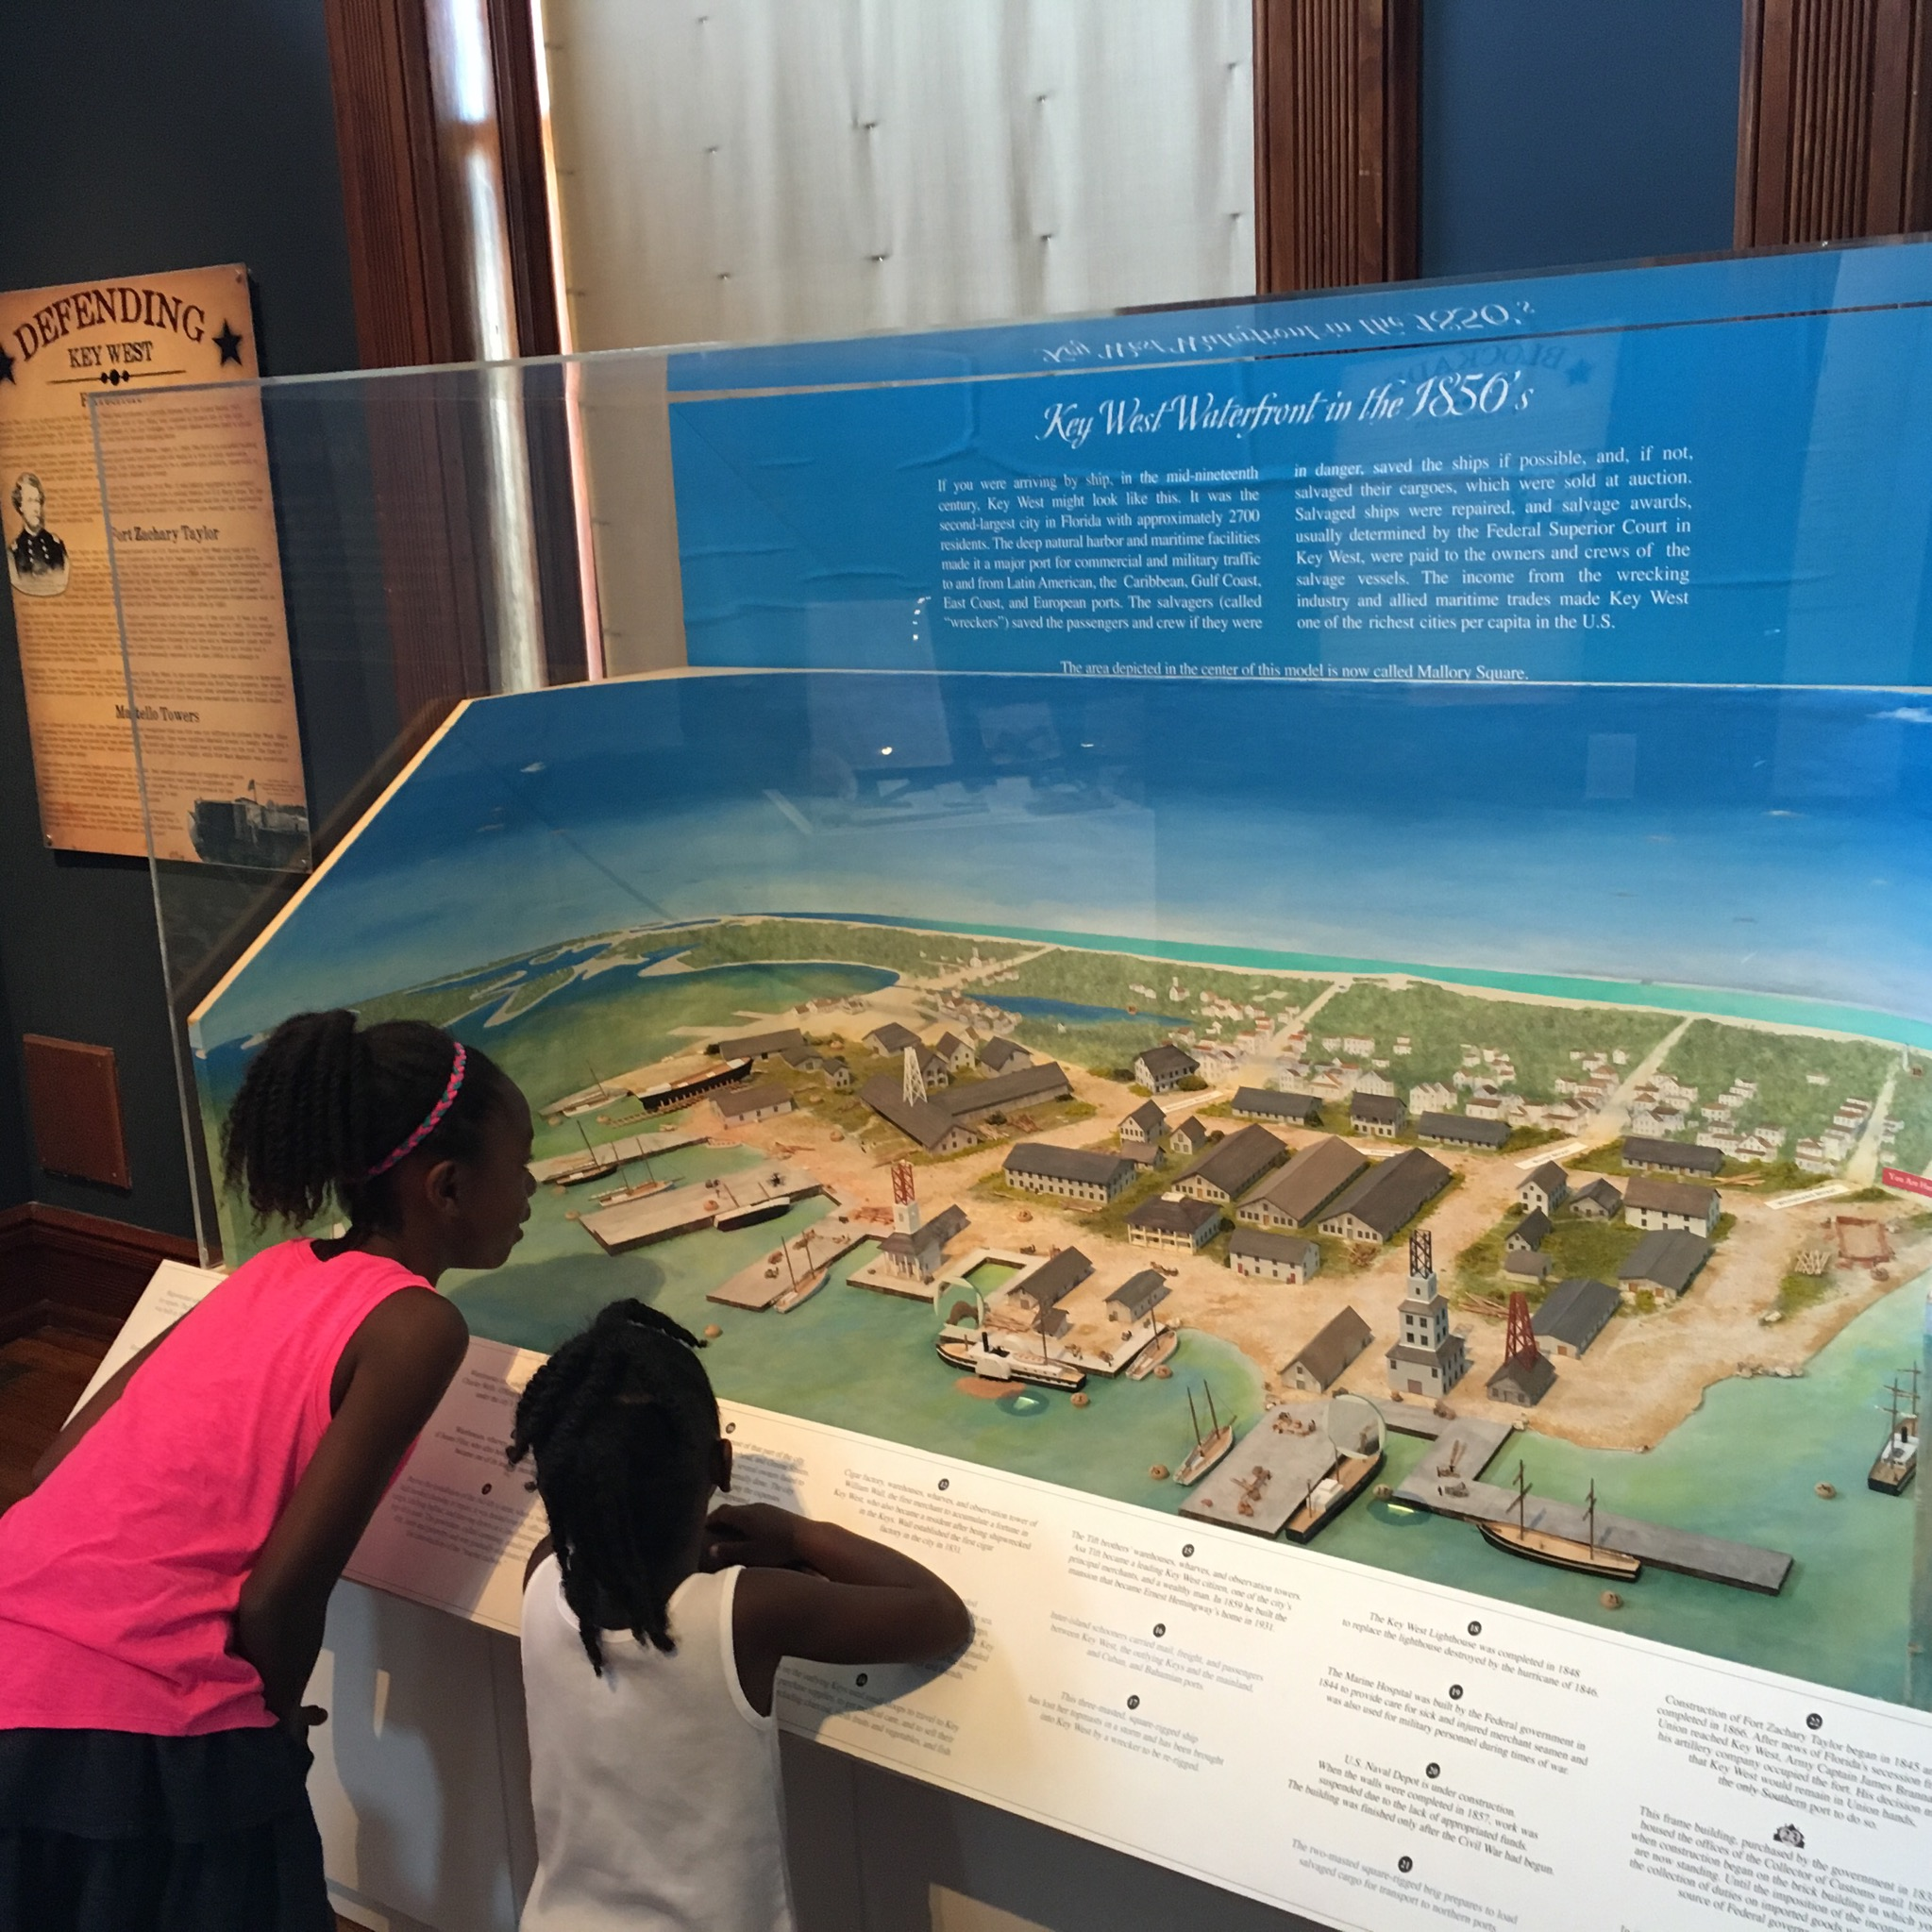 This detailed exhibit of the history of the Key West waterfront held our girls attention for some time...